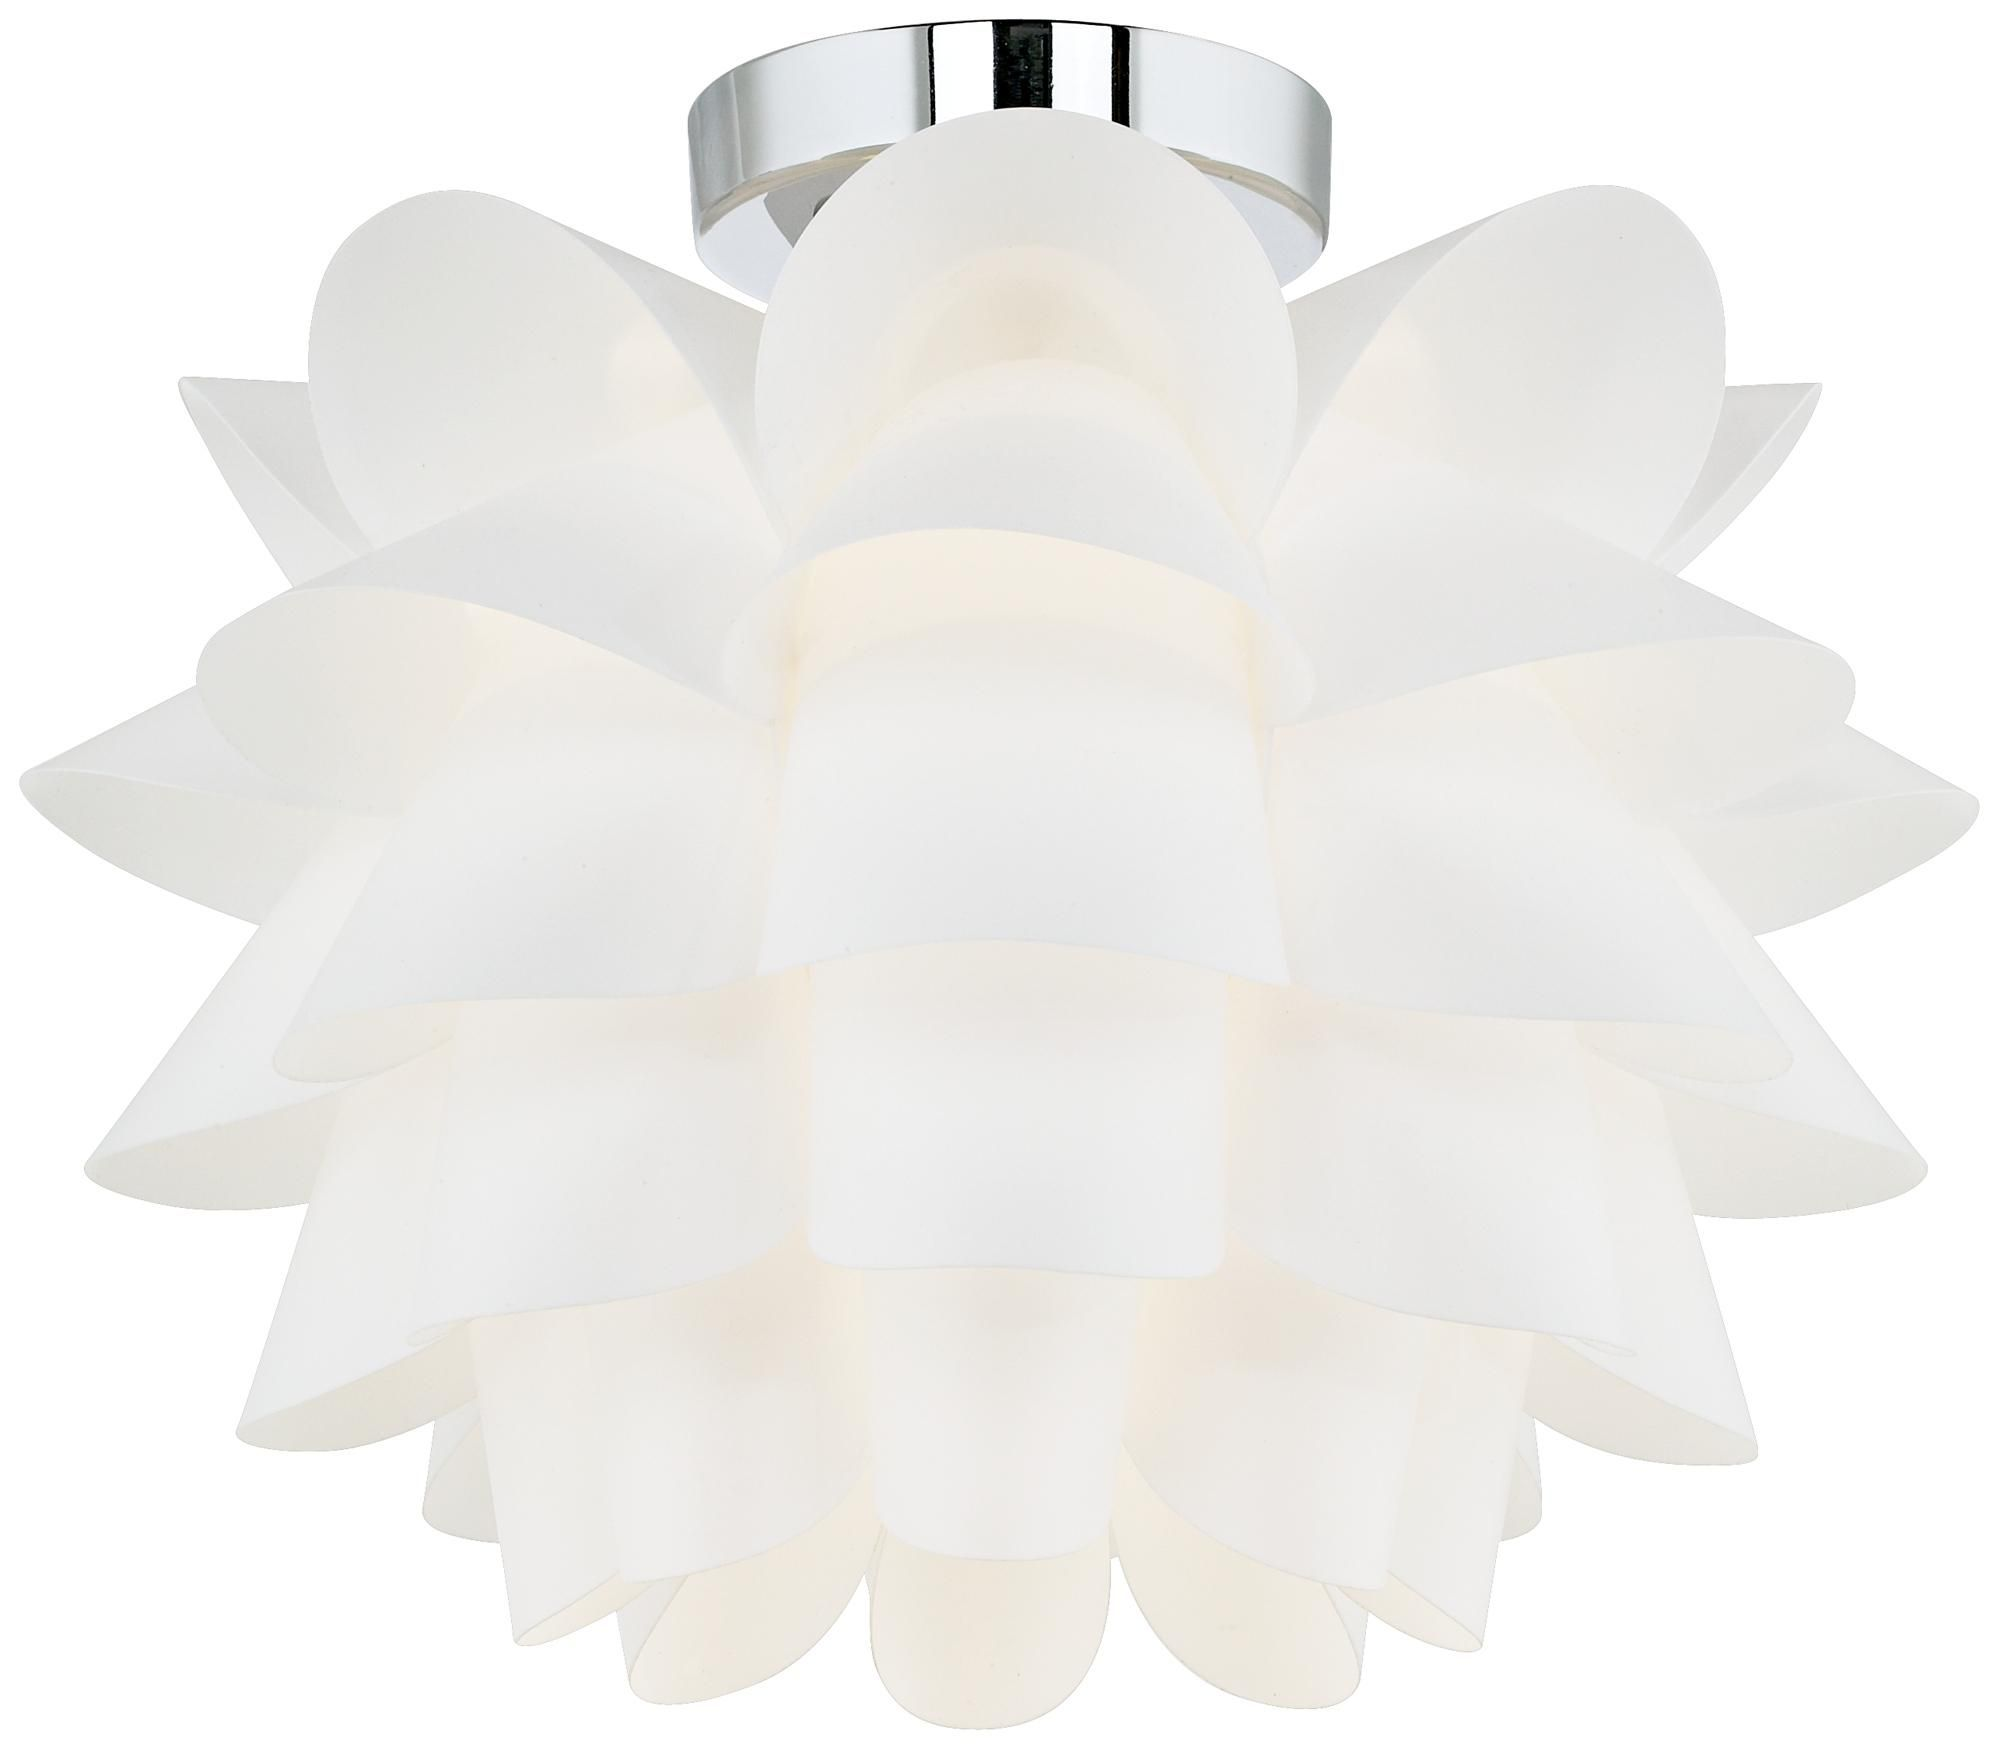 Possini euro design white flower 15 34 wide ceiling light possini euro design white flower 15 34 wide ceiling light 6995 already arubaitofo Gallery